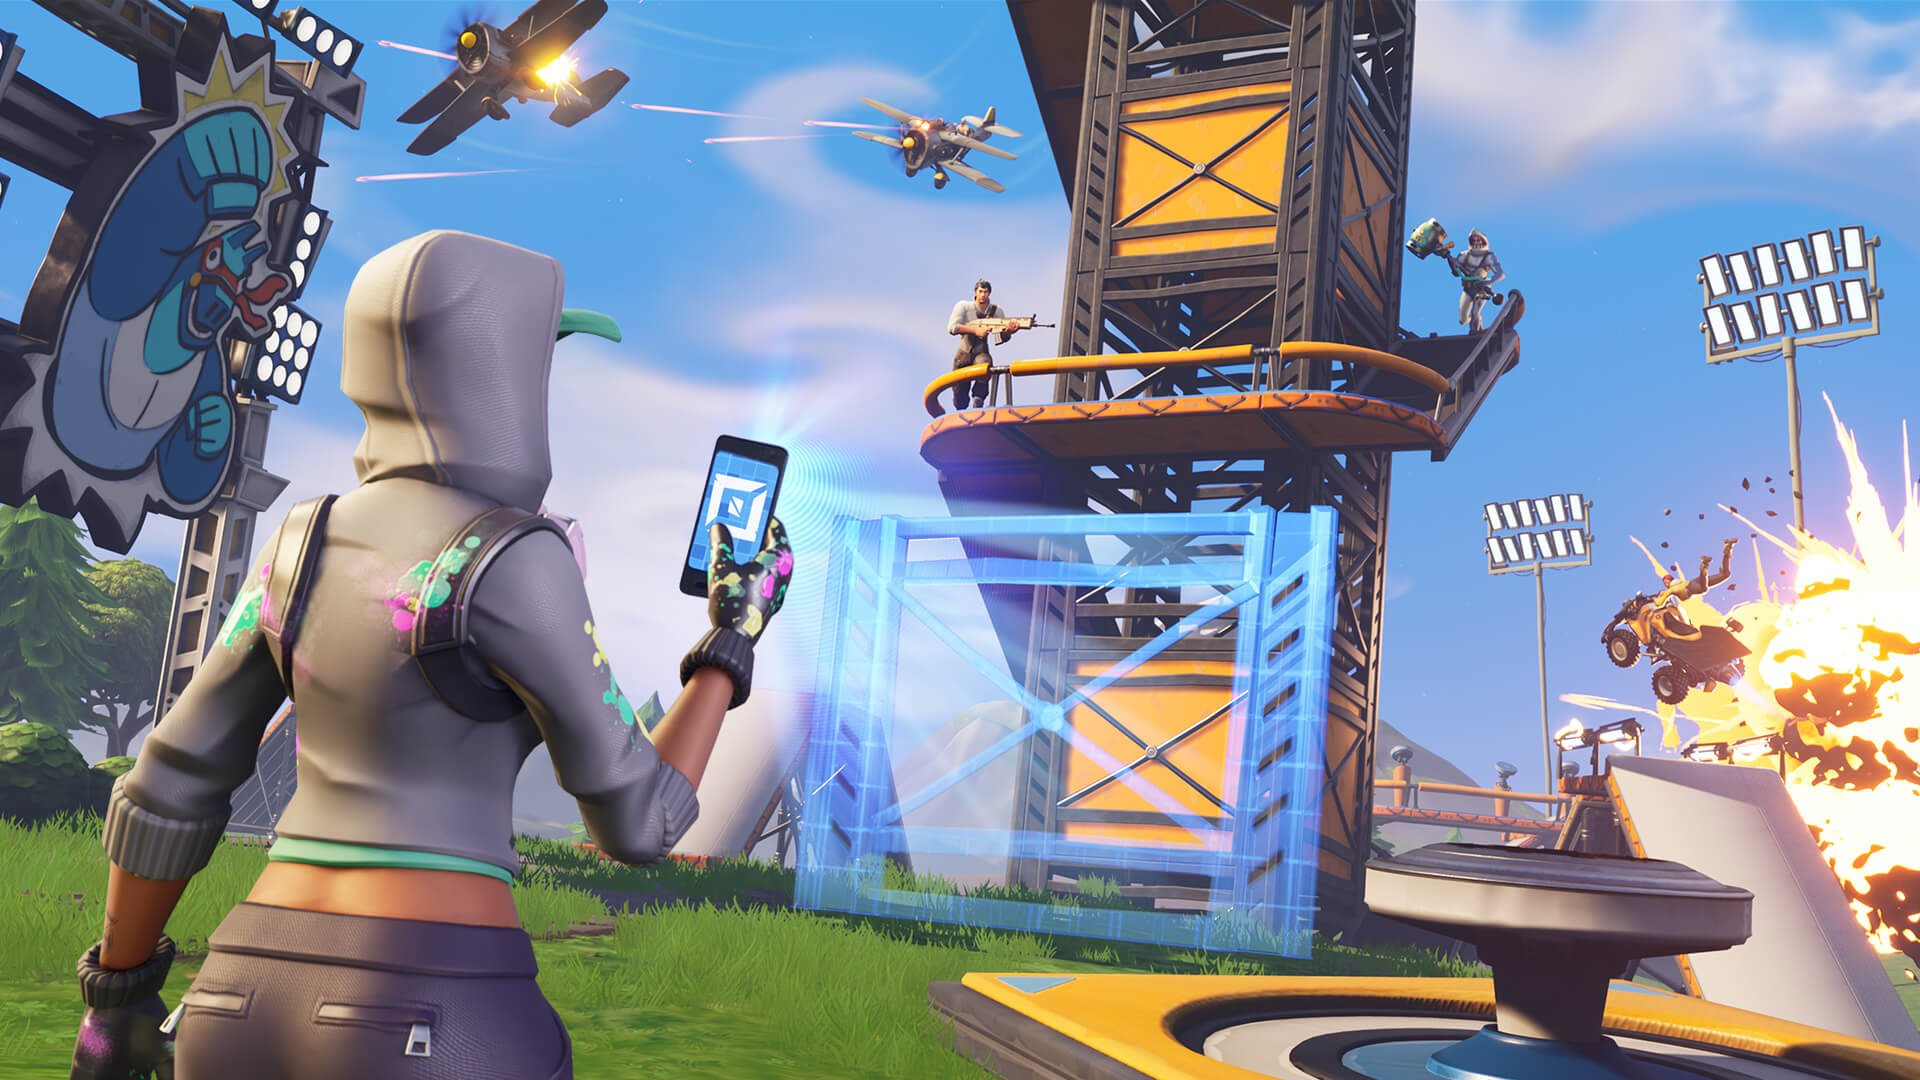 Class-action lawsuit filed against Epic Games